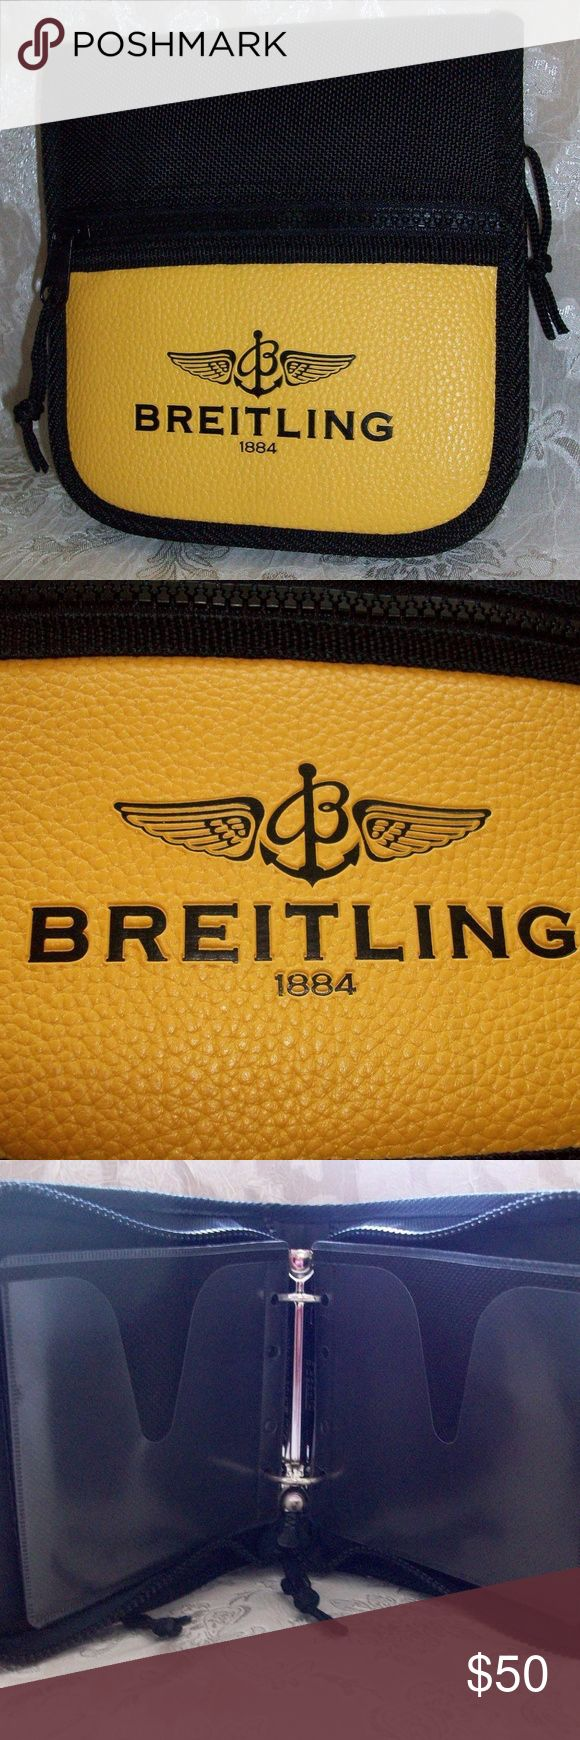 """Men's Breitling DVD or CD Holder Mint! This is a brand new Breitling DVD or CD case. A genuine product made specially for Breitling with the flying """"B"""" logo, """"BREITLING"""" and """"1884"""" on the pebbled yellow finish on the front.  Black with yellow 12 binder-style pages to hold 24 DVD's or CD's. Made of durable vinyl and with a  zip pouch on the front and a net holder compartment inside the front.  Measures over 6 1/2"""" inches by over 7 inches and over 1.5 inches empty. Brand new and never used nor…"""